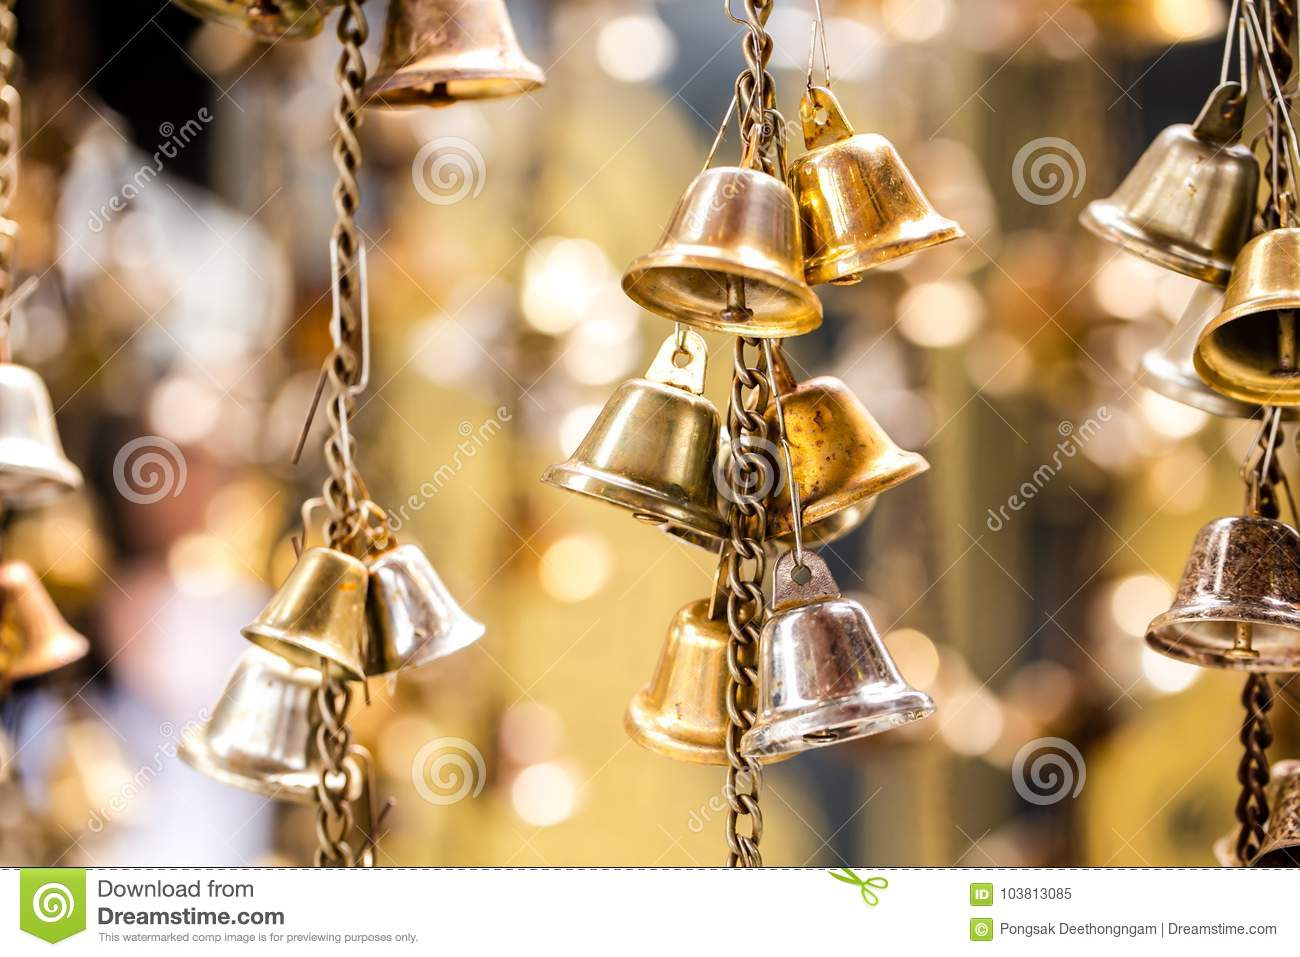 Bell at a temple  stock image  Image of bell, background - 103813085